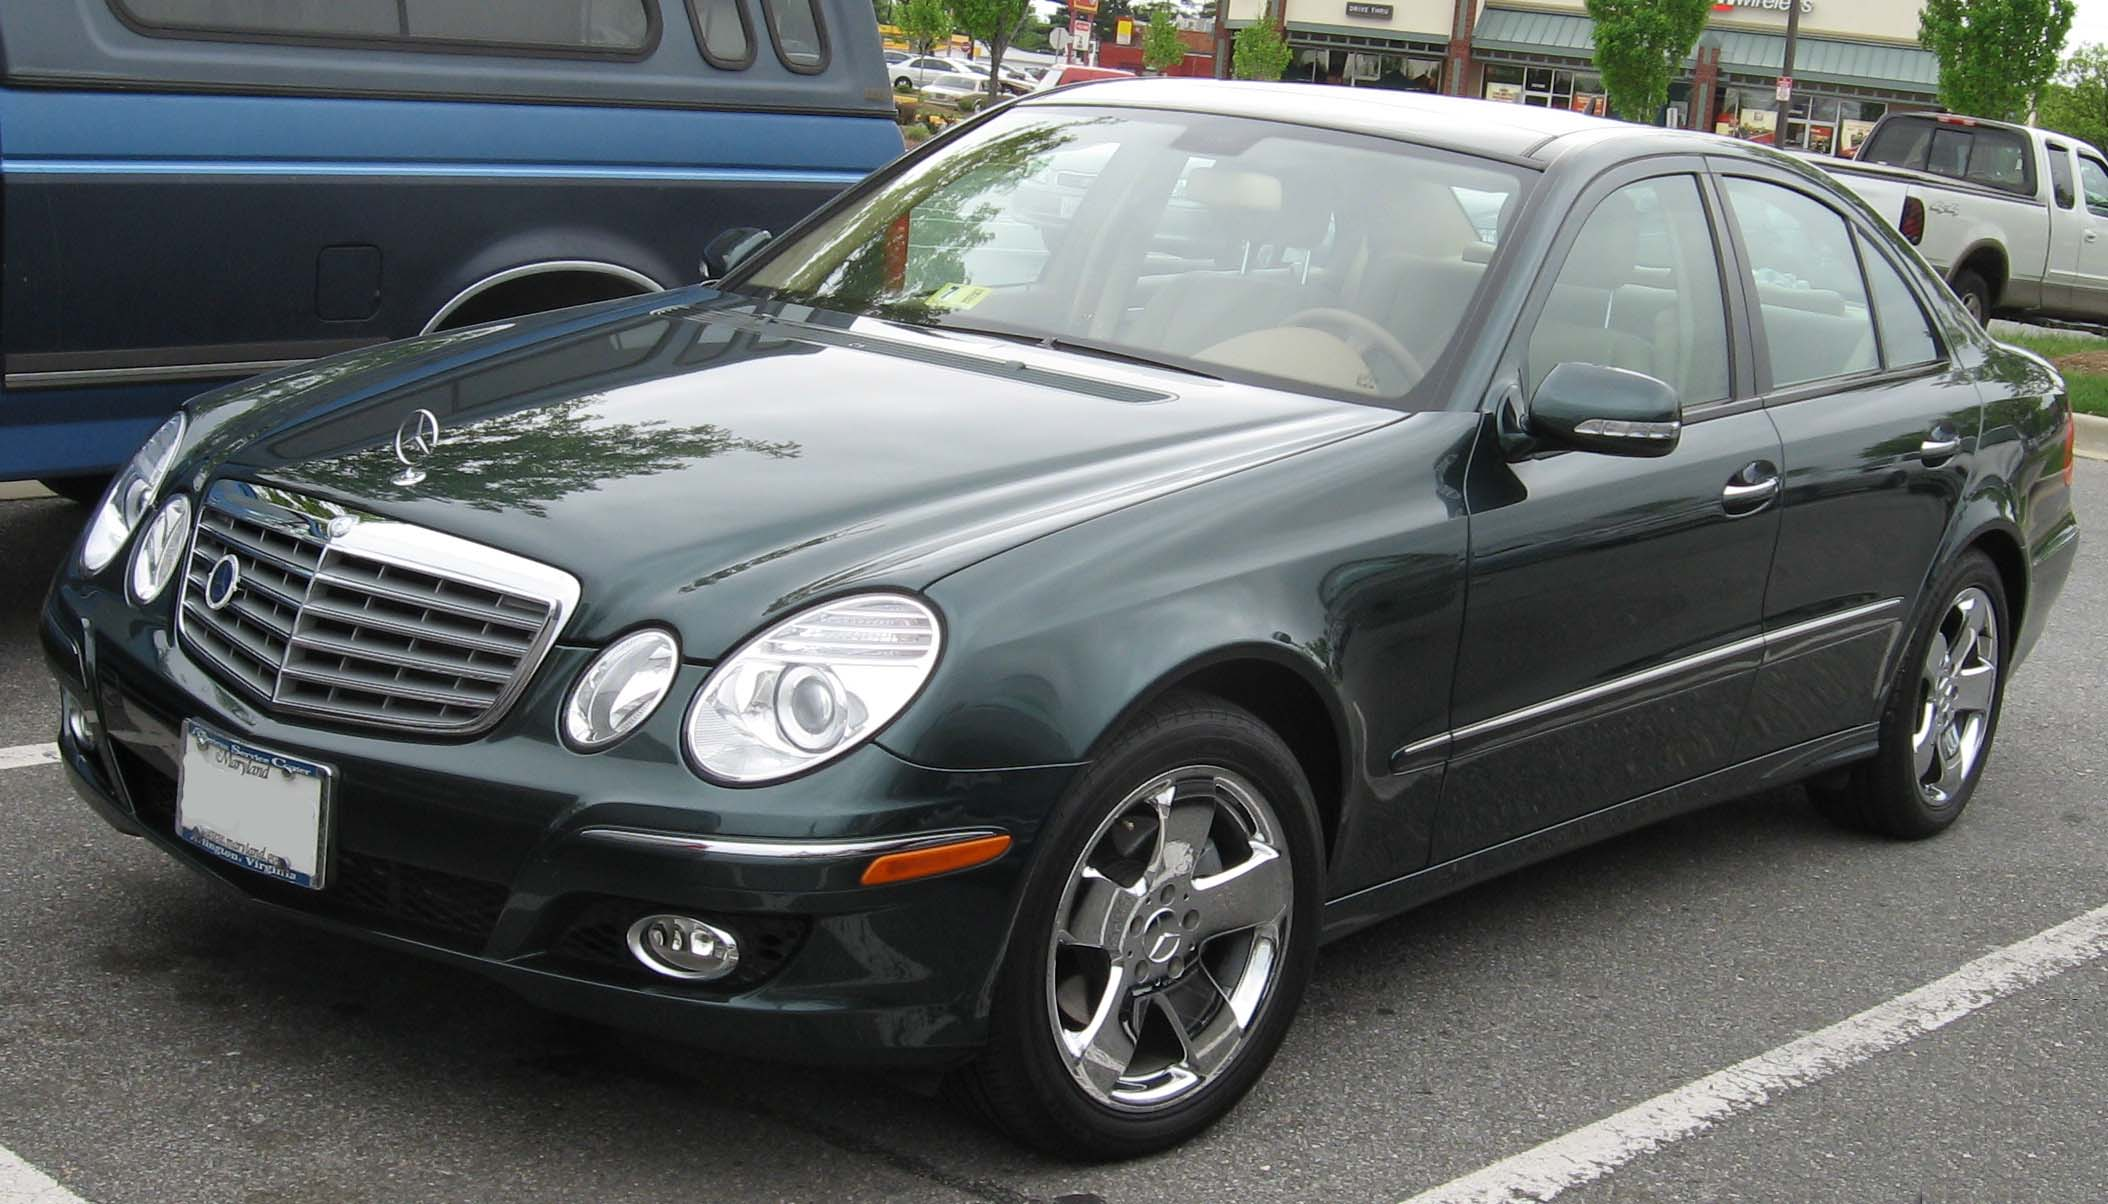 Lovely File:2007 Mercedes Benz E350